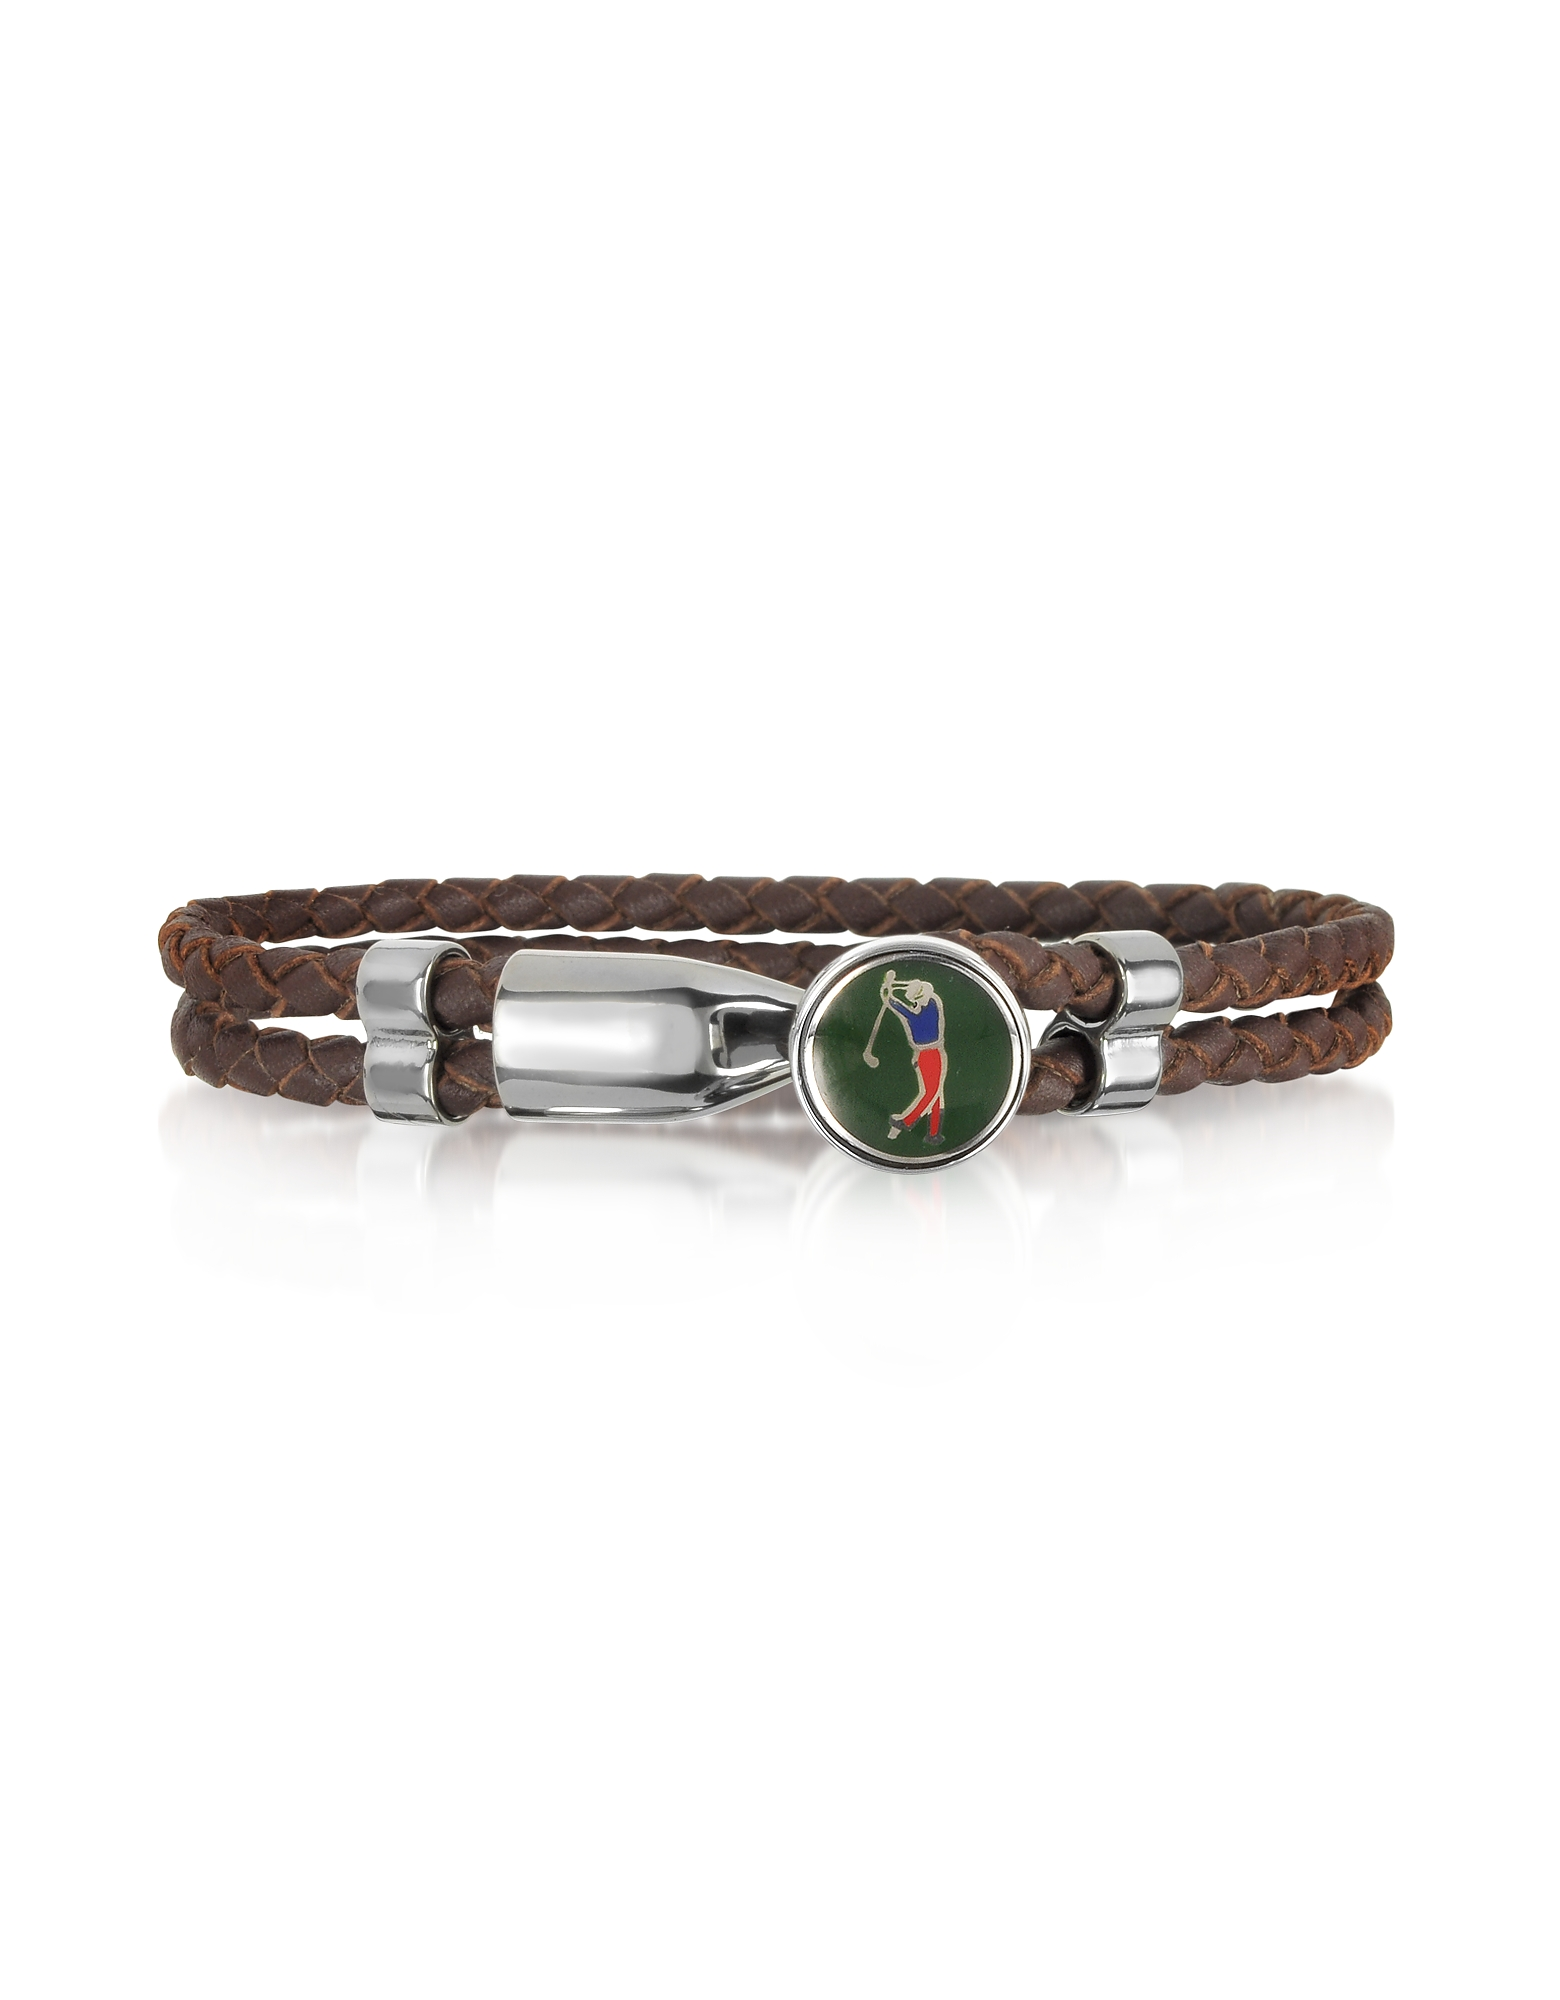 Forzieri Men's Bracelets, Green Golfer Brass and Leather Men's Bracelet